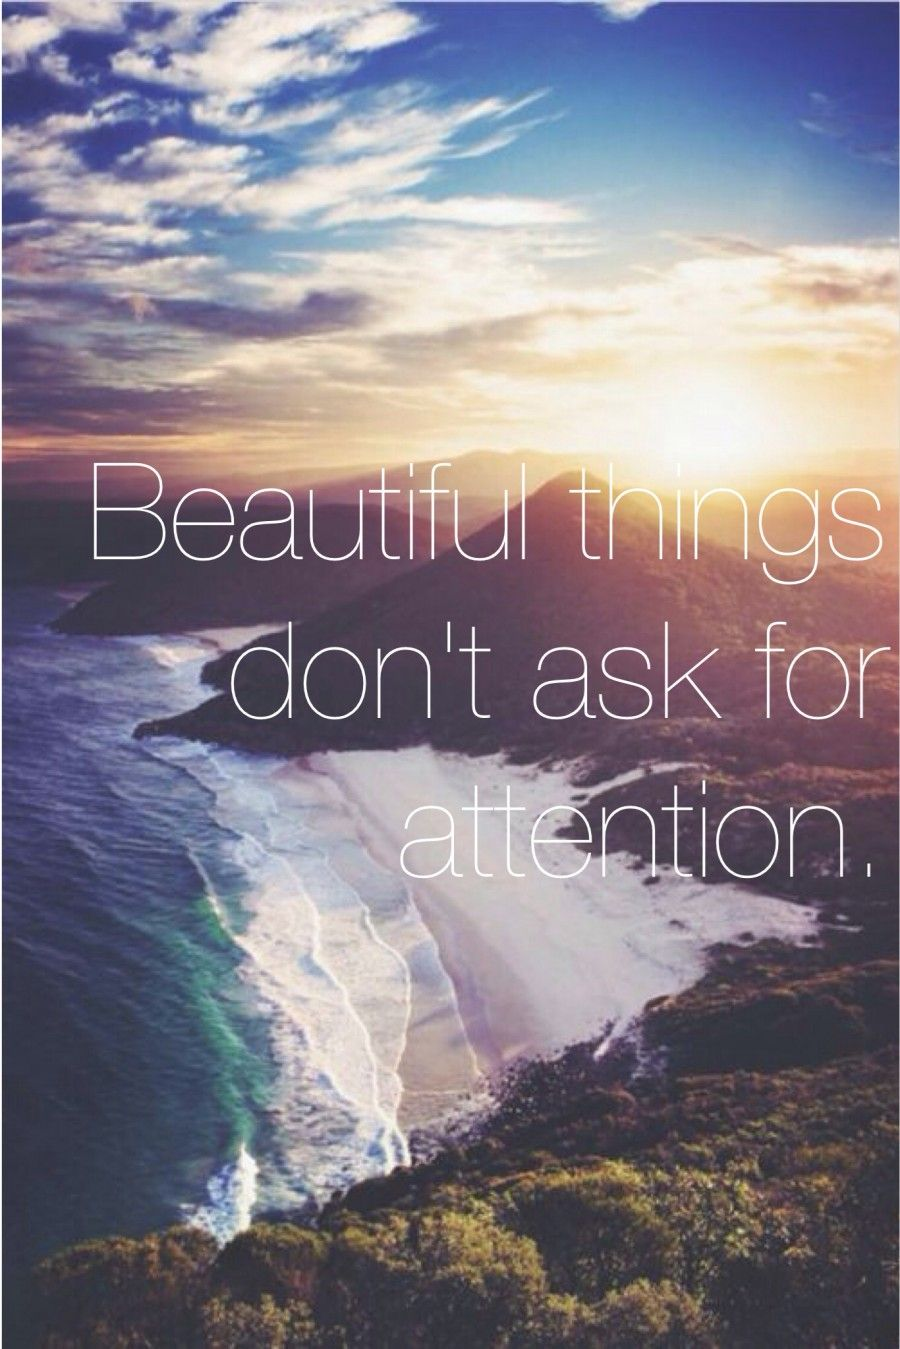 beautiful-things-don-sharp39-t-ask-for-attention...i-love-this-quote-from-the-secret-life-of-walter-mitty.-i-want-to-make-an-album-of-candid-shots-amp-nature-photos-with-this-quote-in-the-front